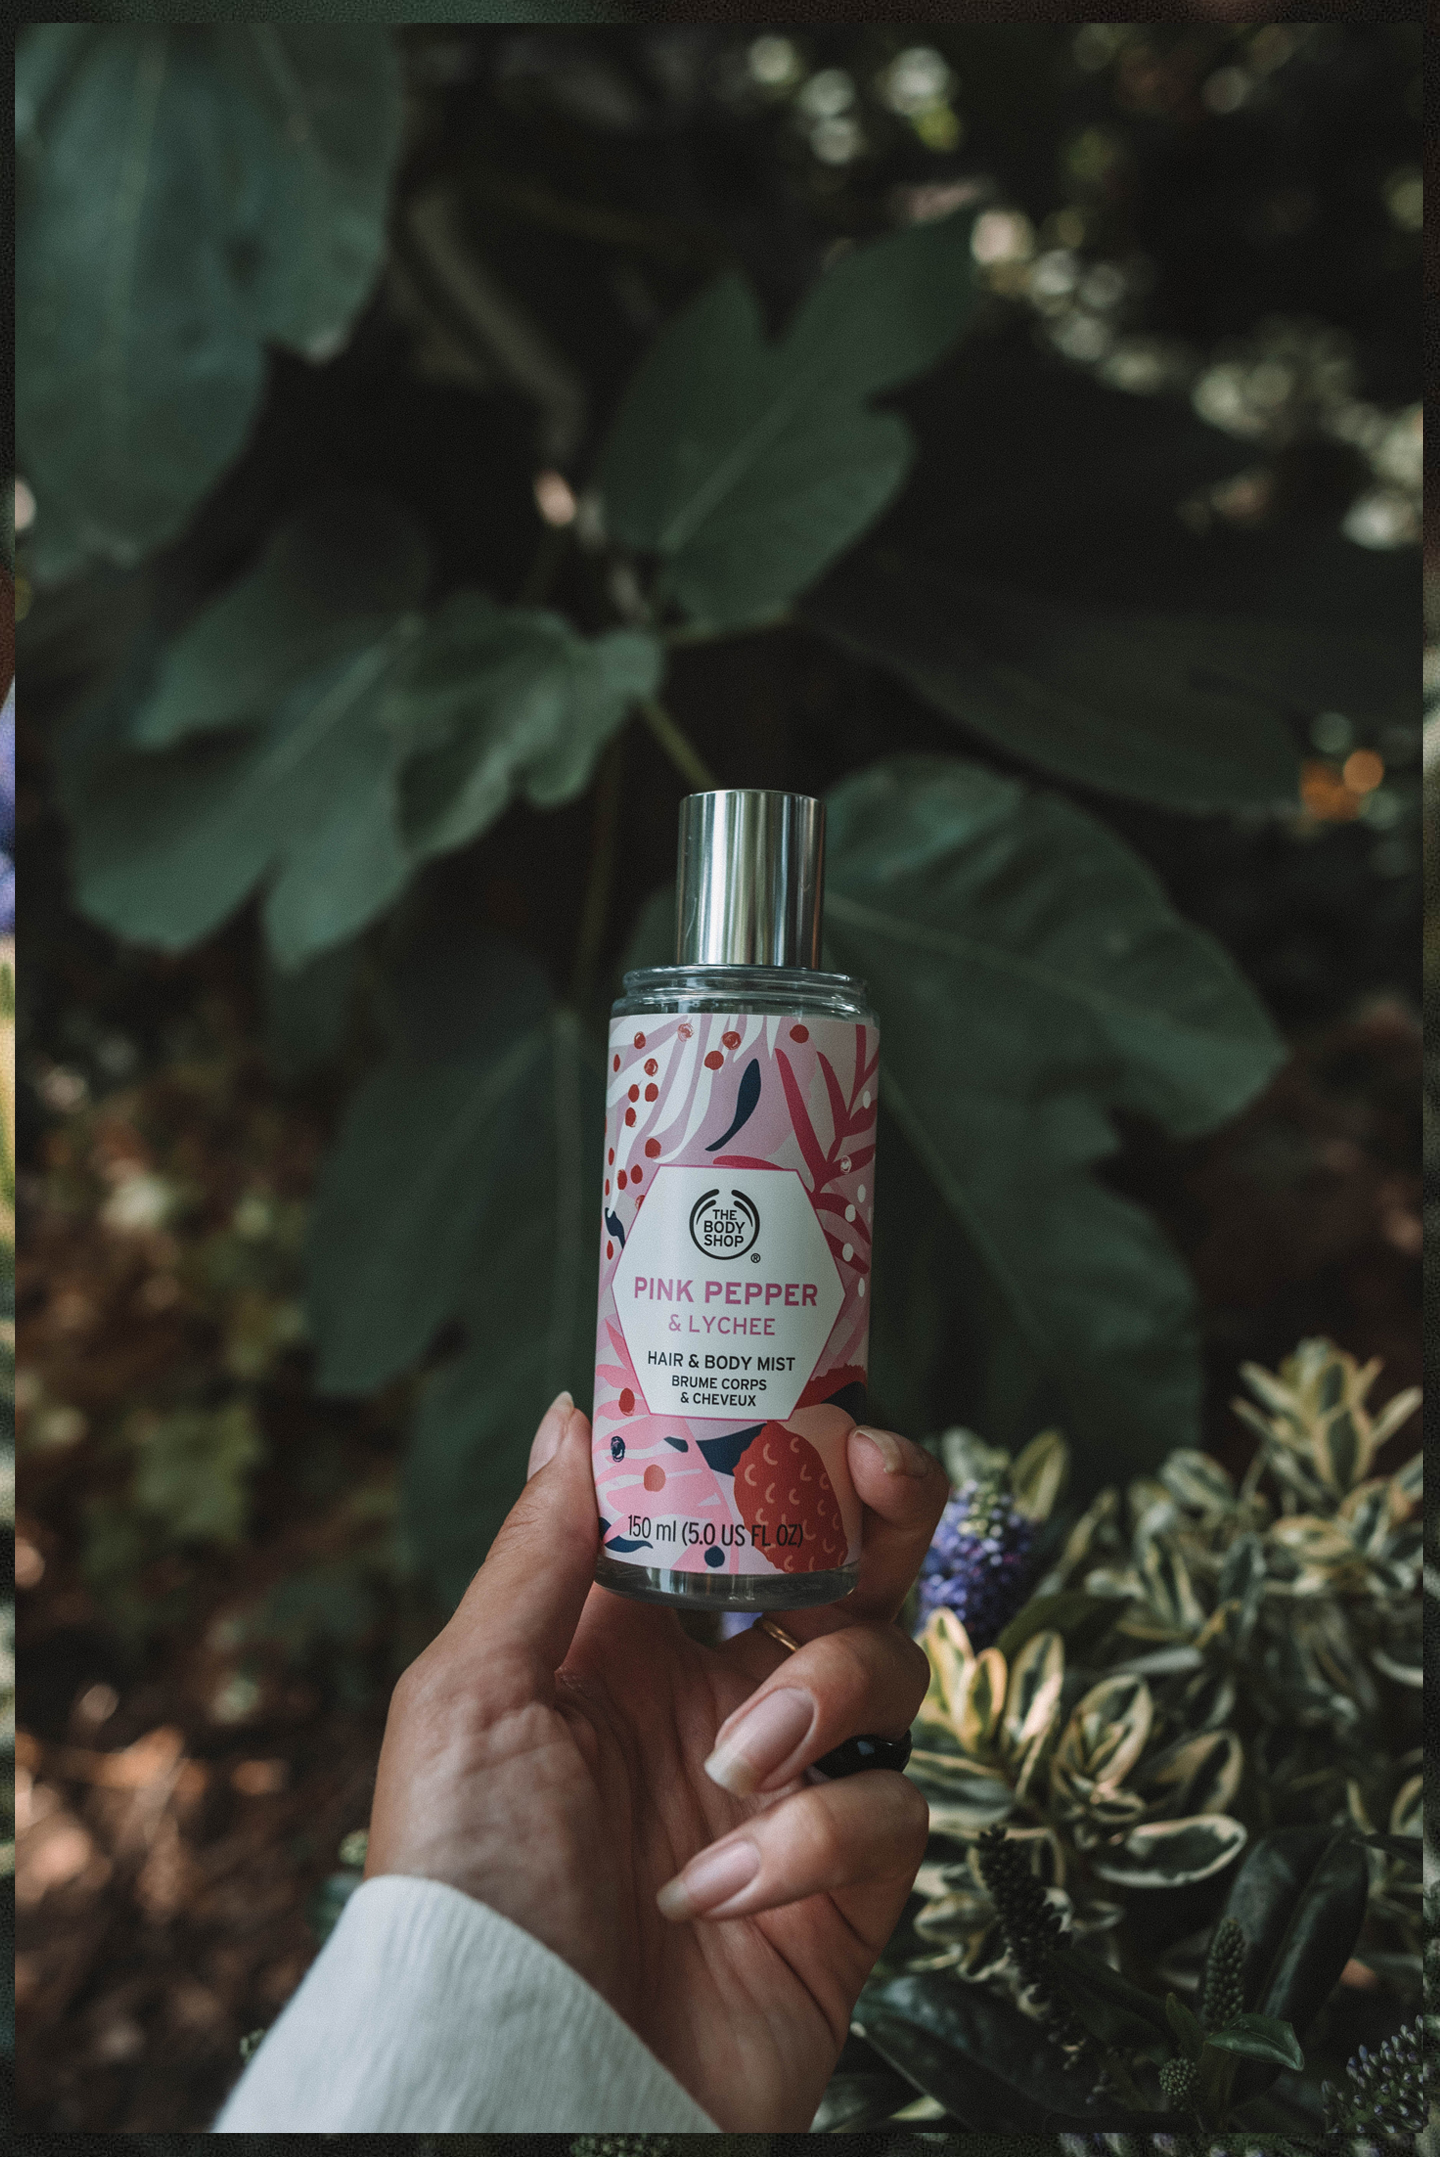 Pink Pepper & Lychee Hair & Body Mist